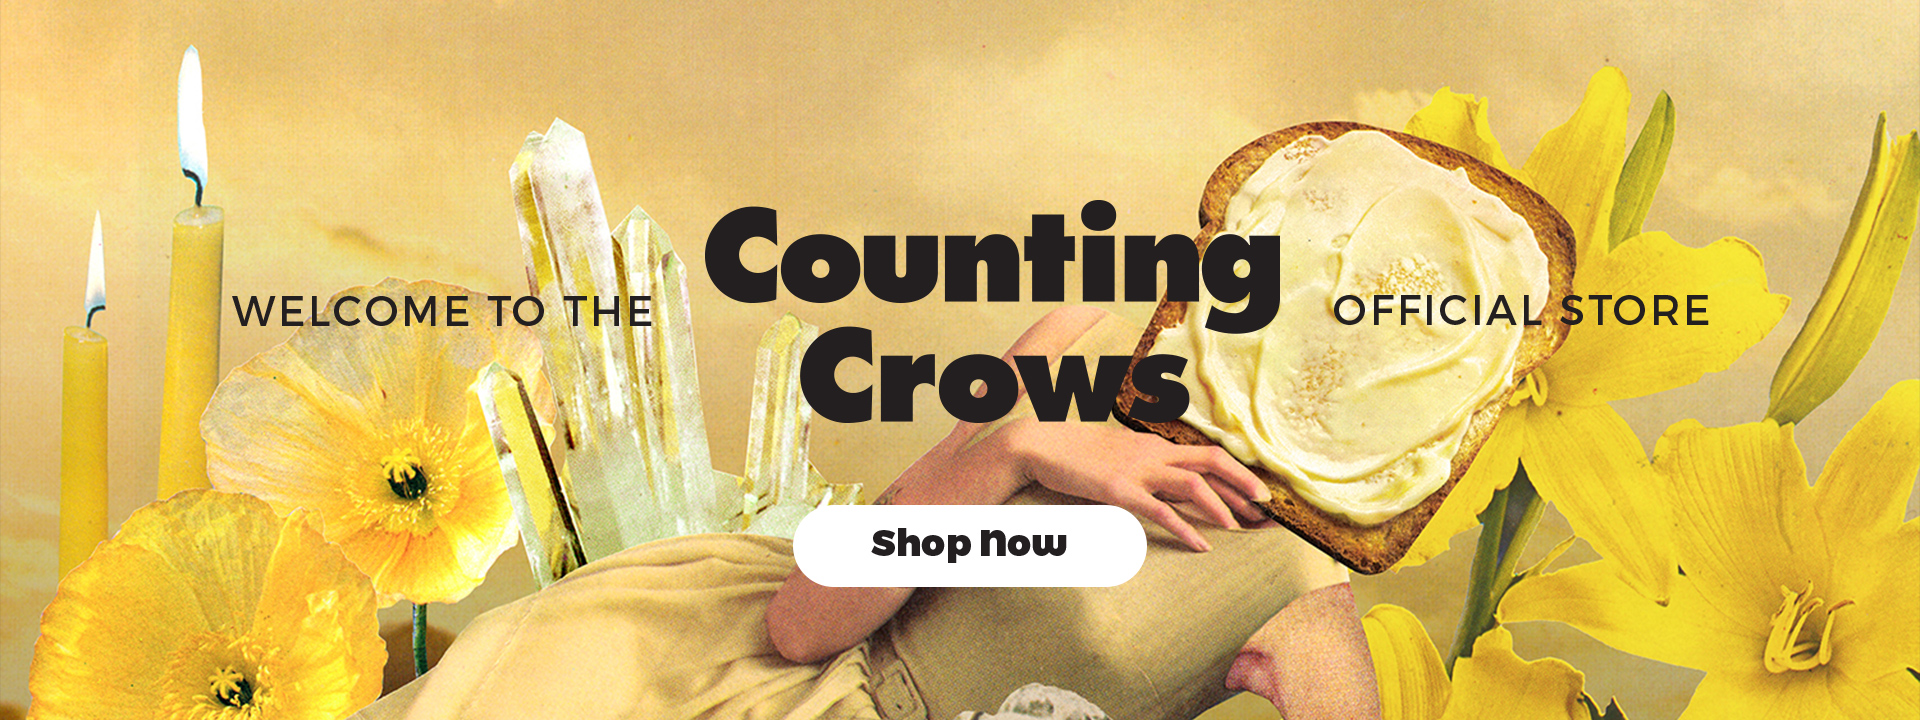 Welcome to the Counting Crows official store. Shop now!